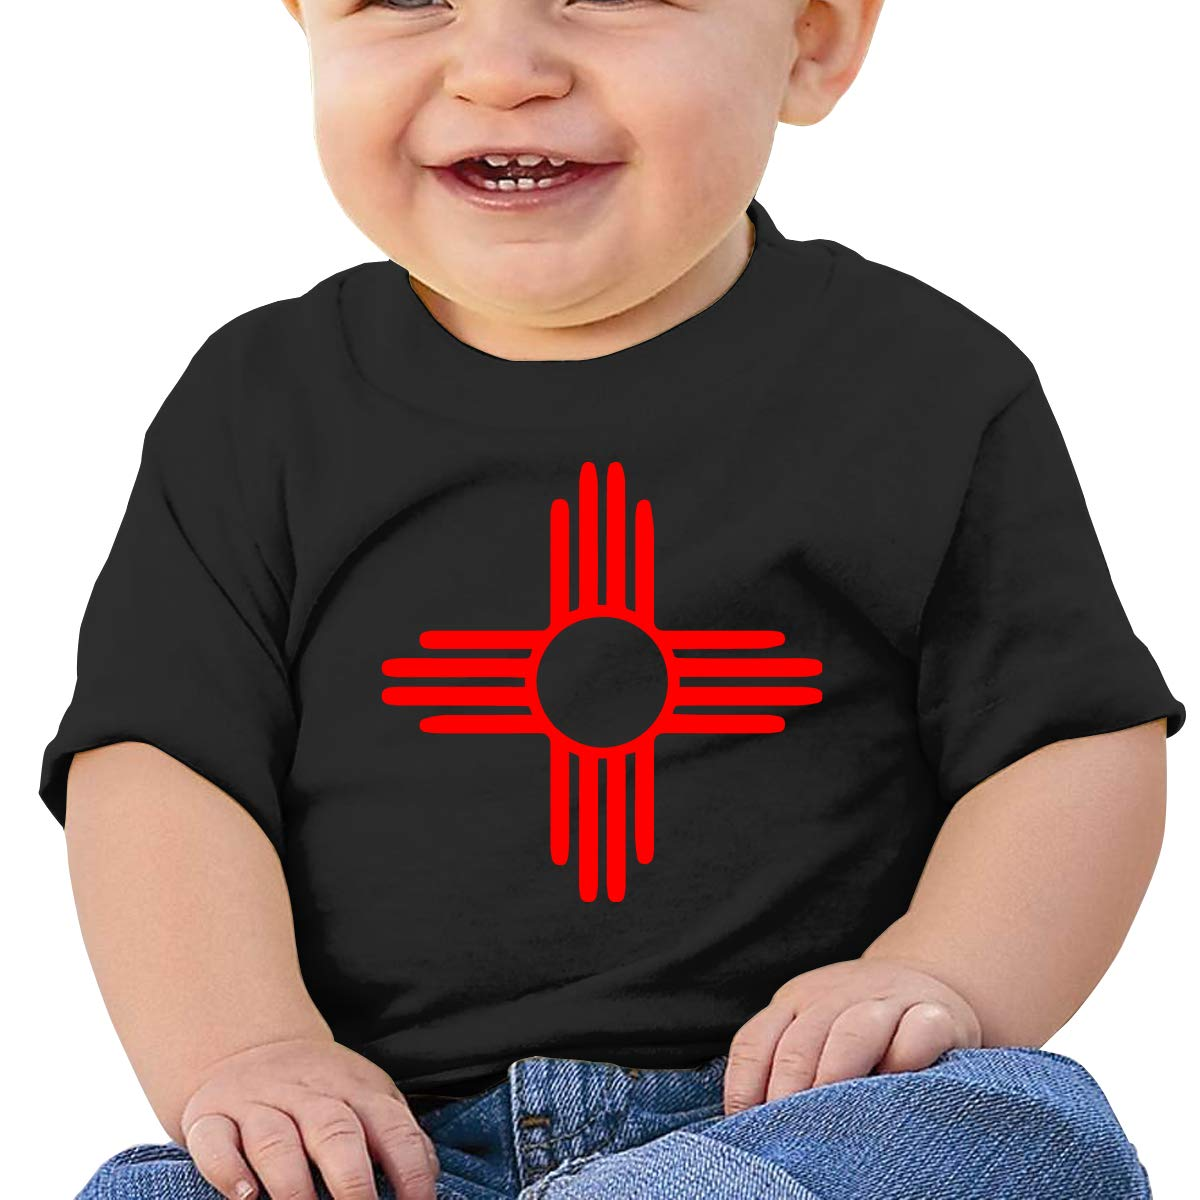 New Mexico Sun Zia Baby T-Shirt Toddler Cotton T Shirts Funny Clothes for 6M-2T Baby